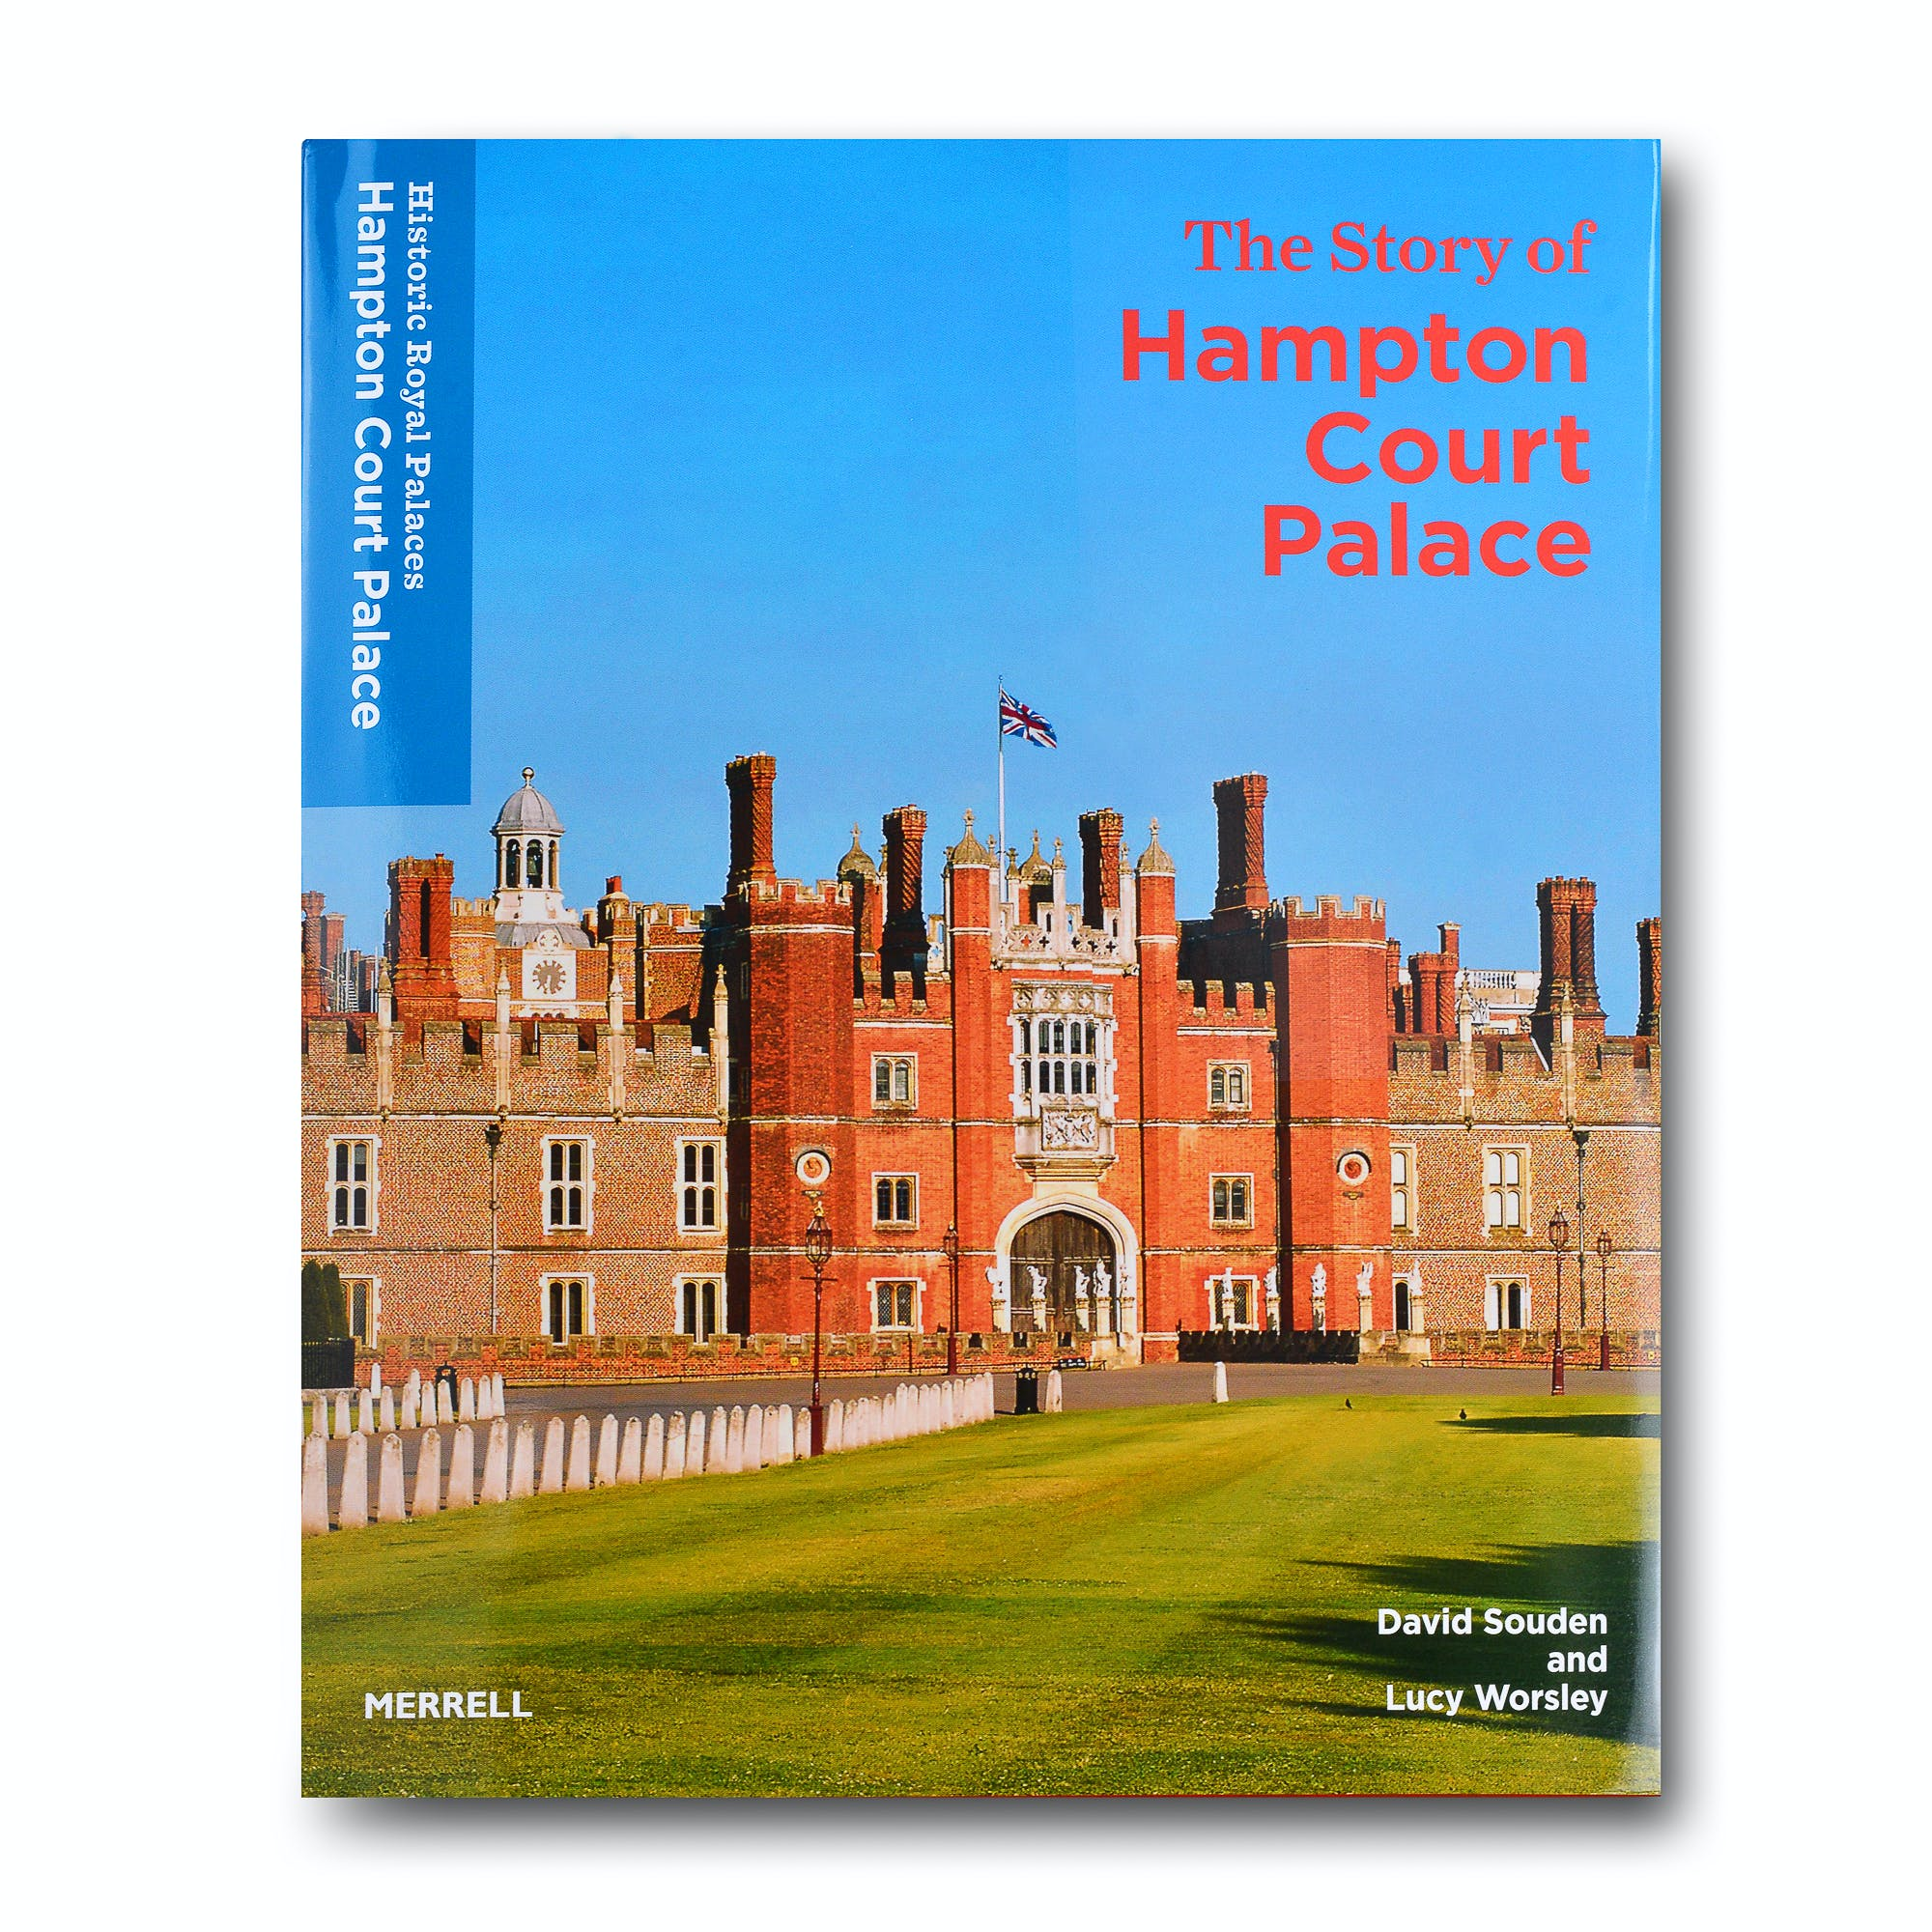 Written by Lucy Worsley, Chief Curator of Historic Royal Palaces, this book explores Hampton Court Palace's rich history.